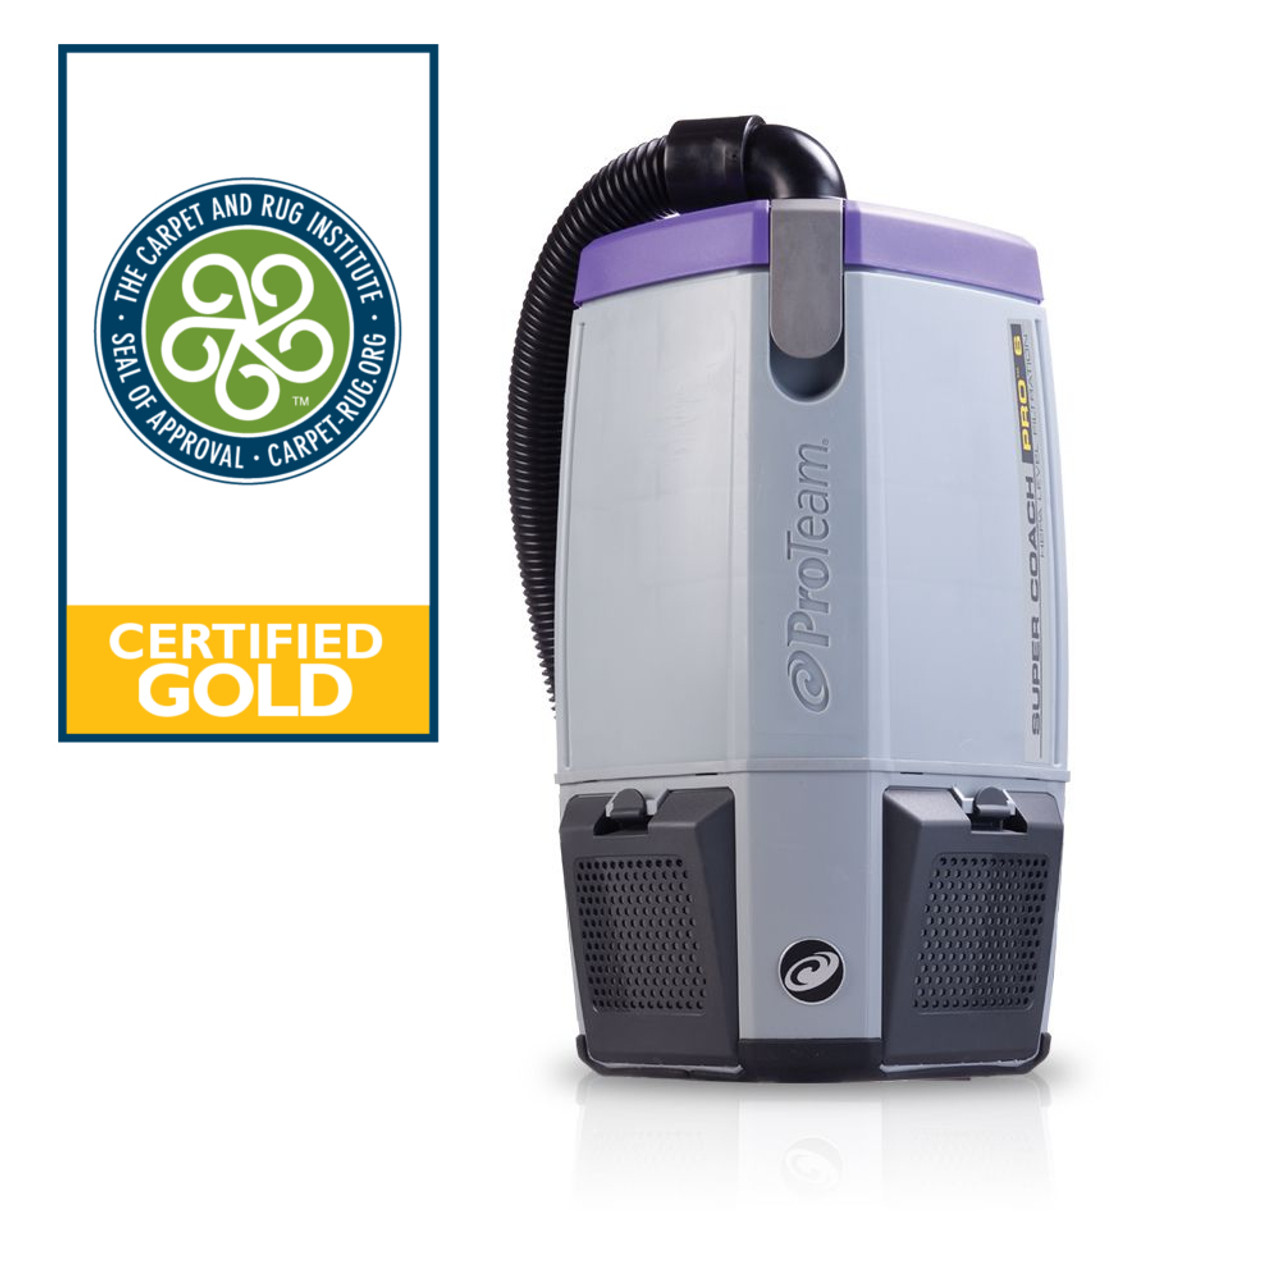 The Super Coach Pro 6  with 6 qt. capacity and is Gold certified for 99.9% efficiency in picking up particulates by the Carpet and Rug Institute.